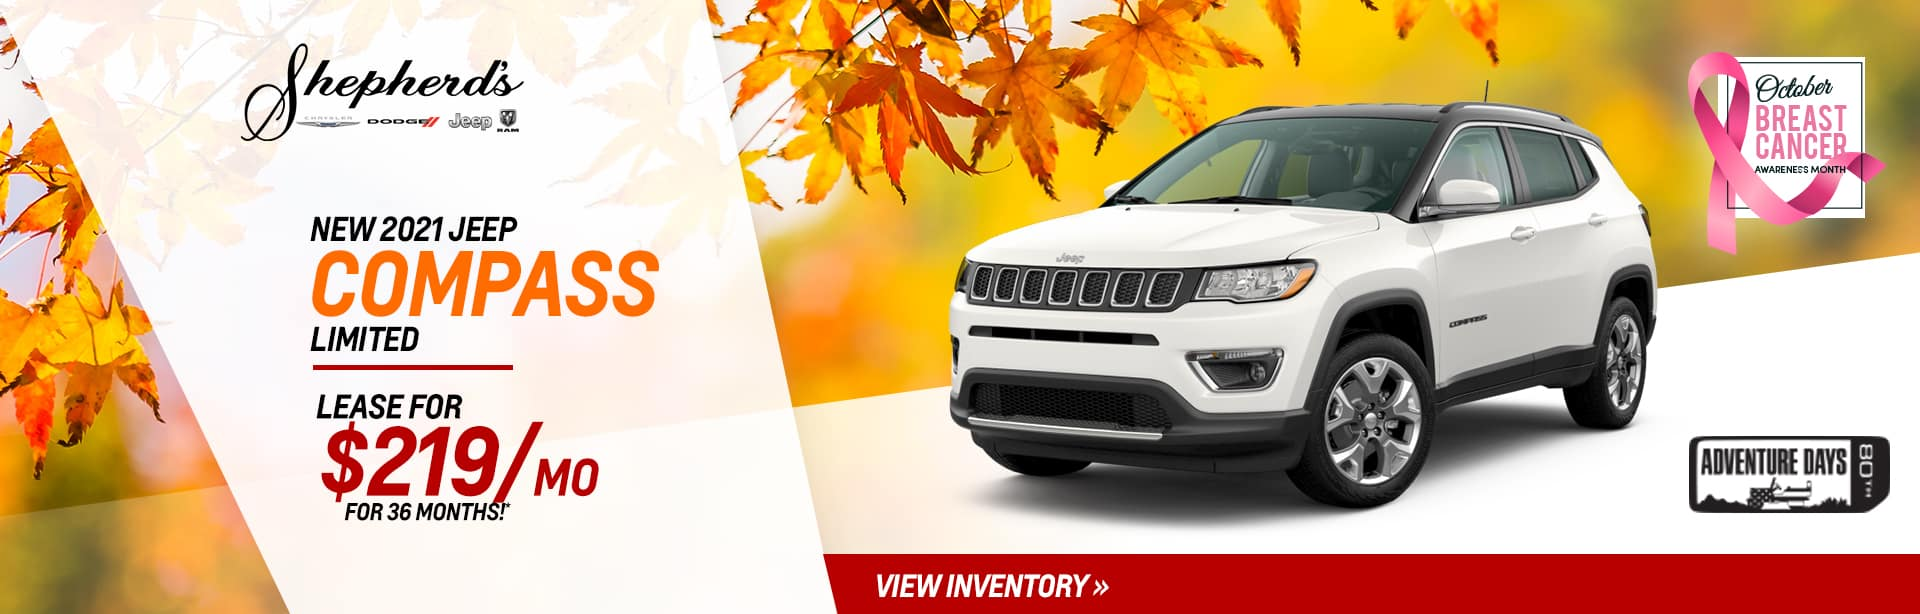 New Jeep Compass Inventory near Fort Wayne, Indiana.